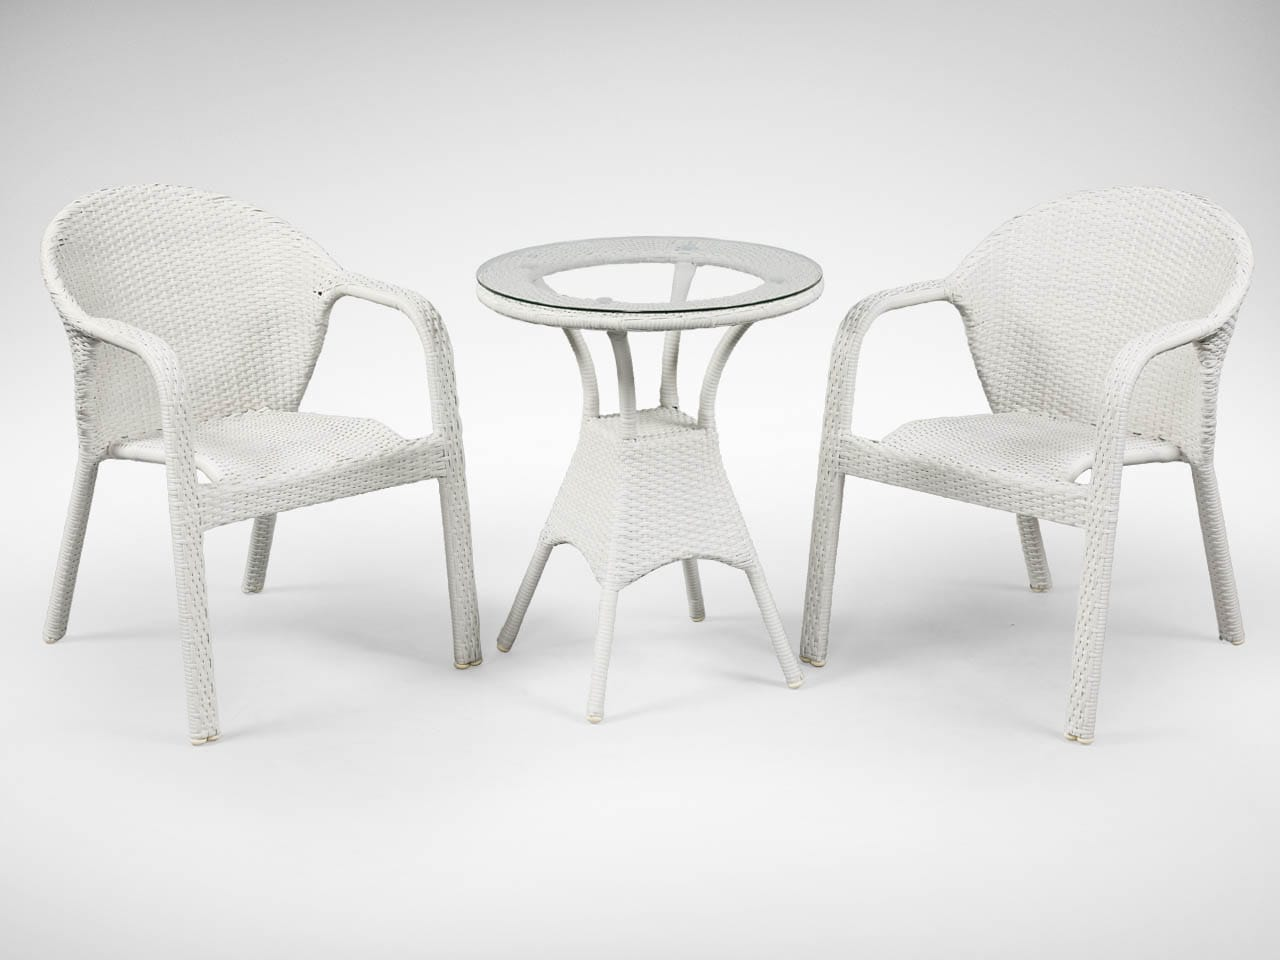 [Jersey Outdoor Armchair & Jude Outdoor Dining Table – Dia600]<br />